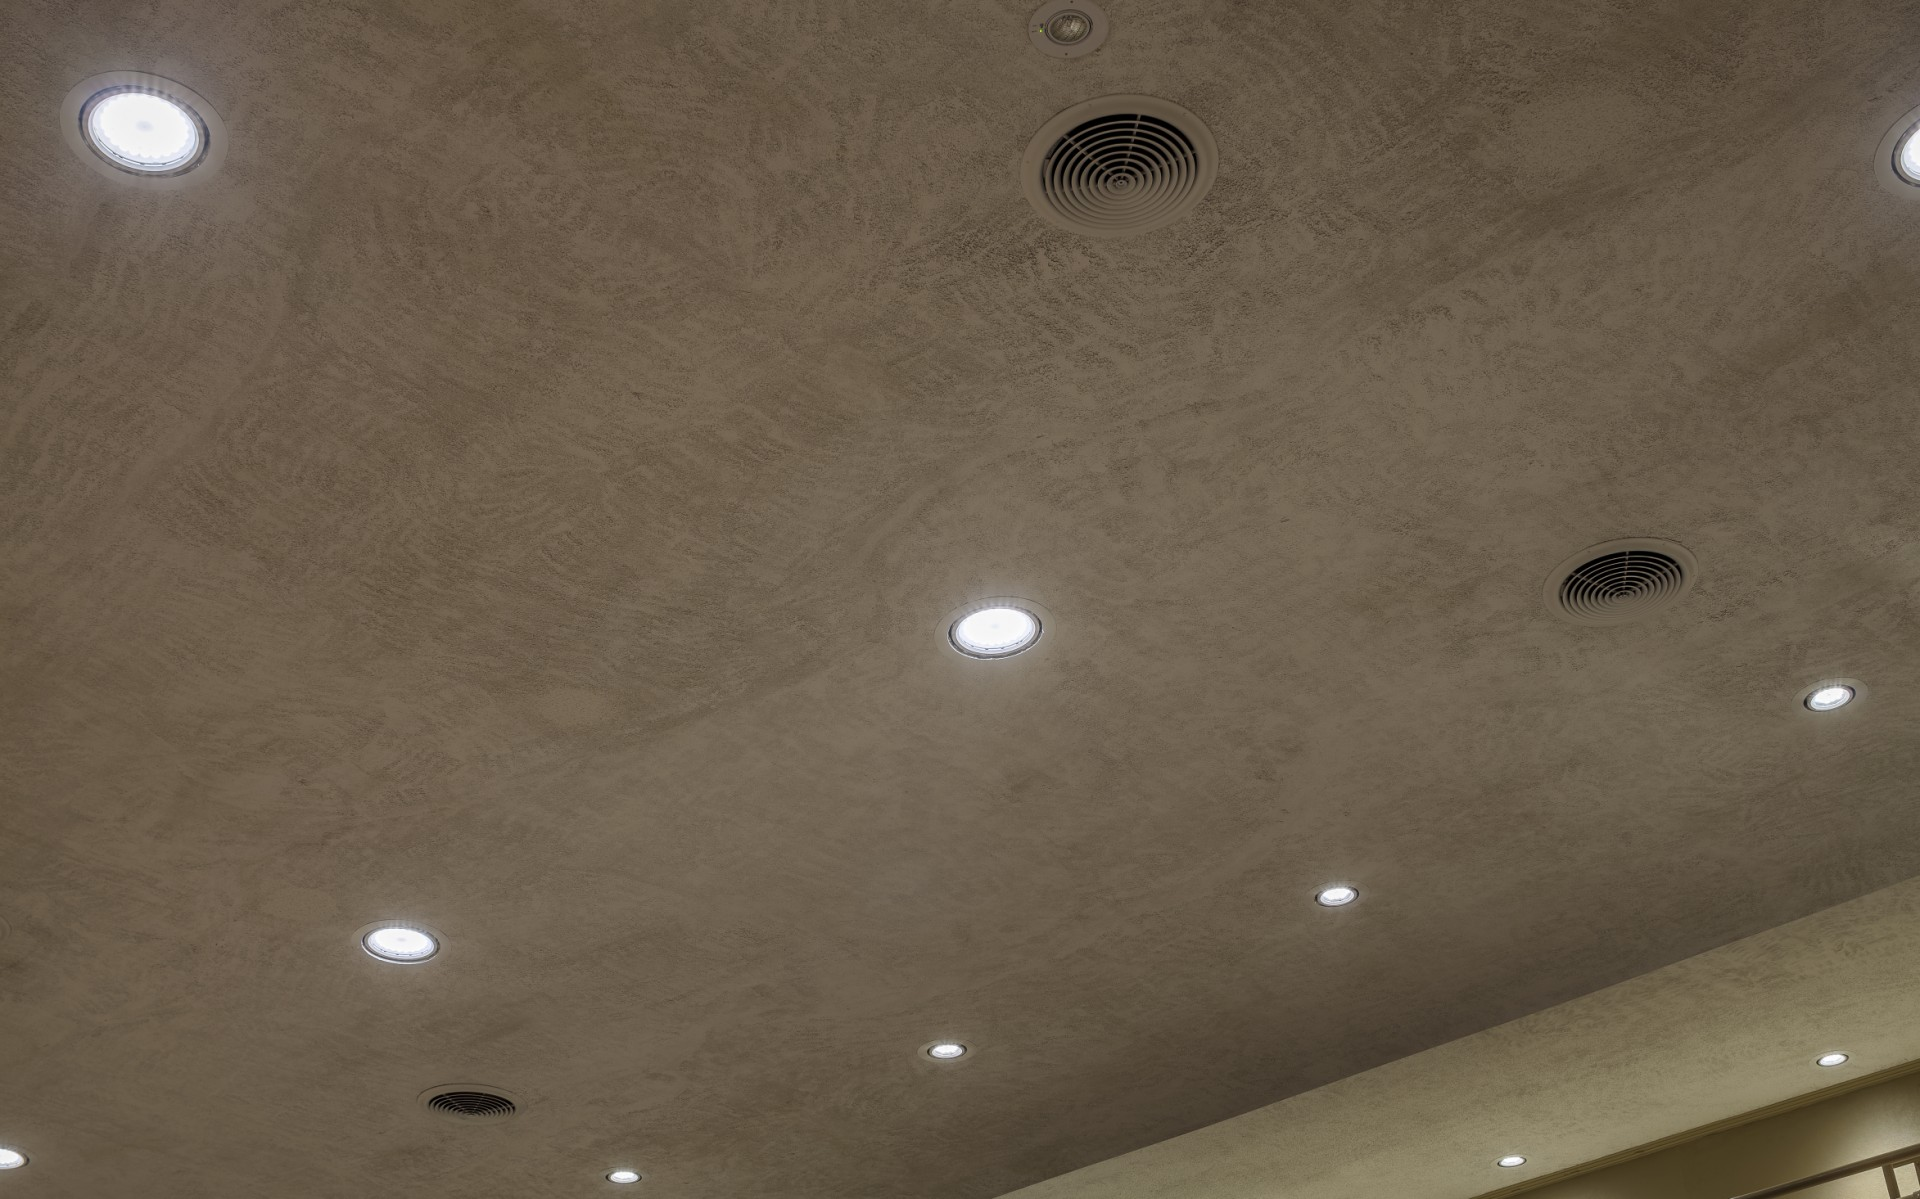 The luminaires were installed in existing openings using L-brackets that could be mounted from below.